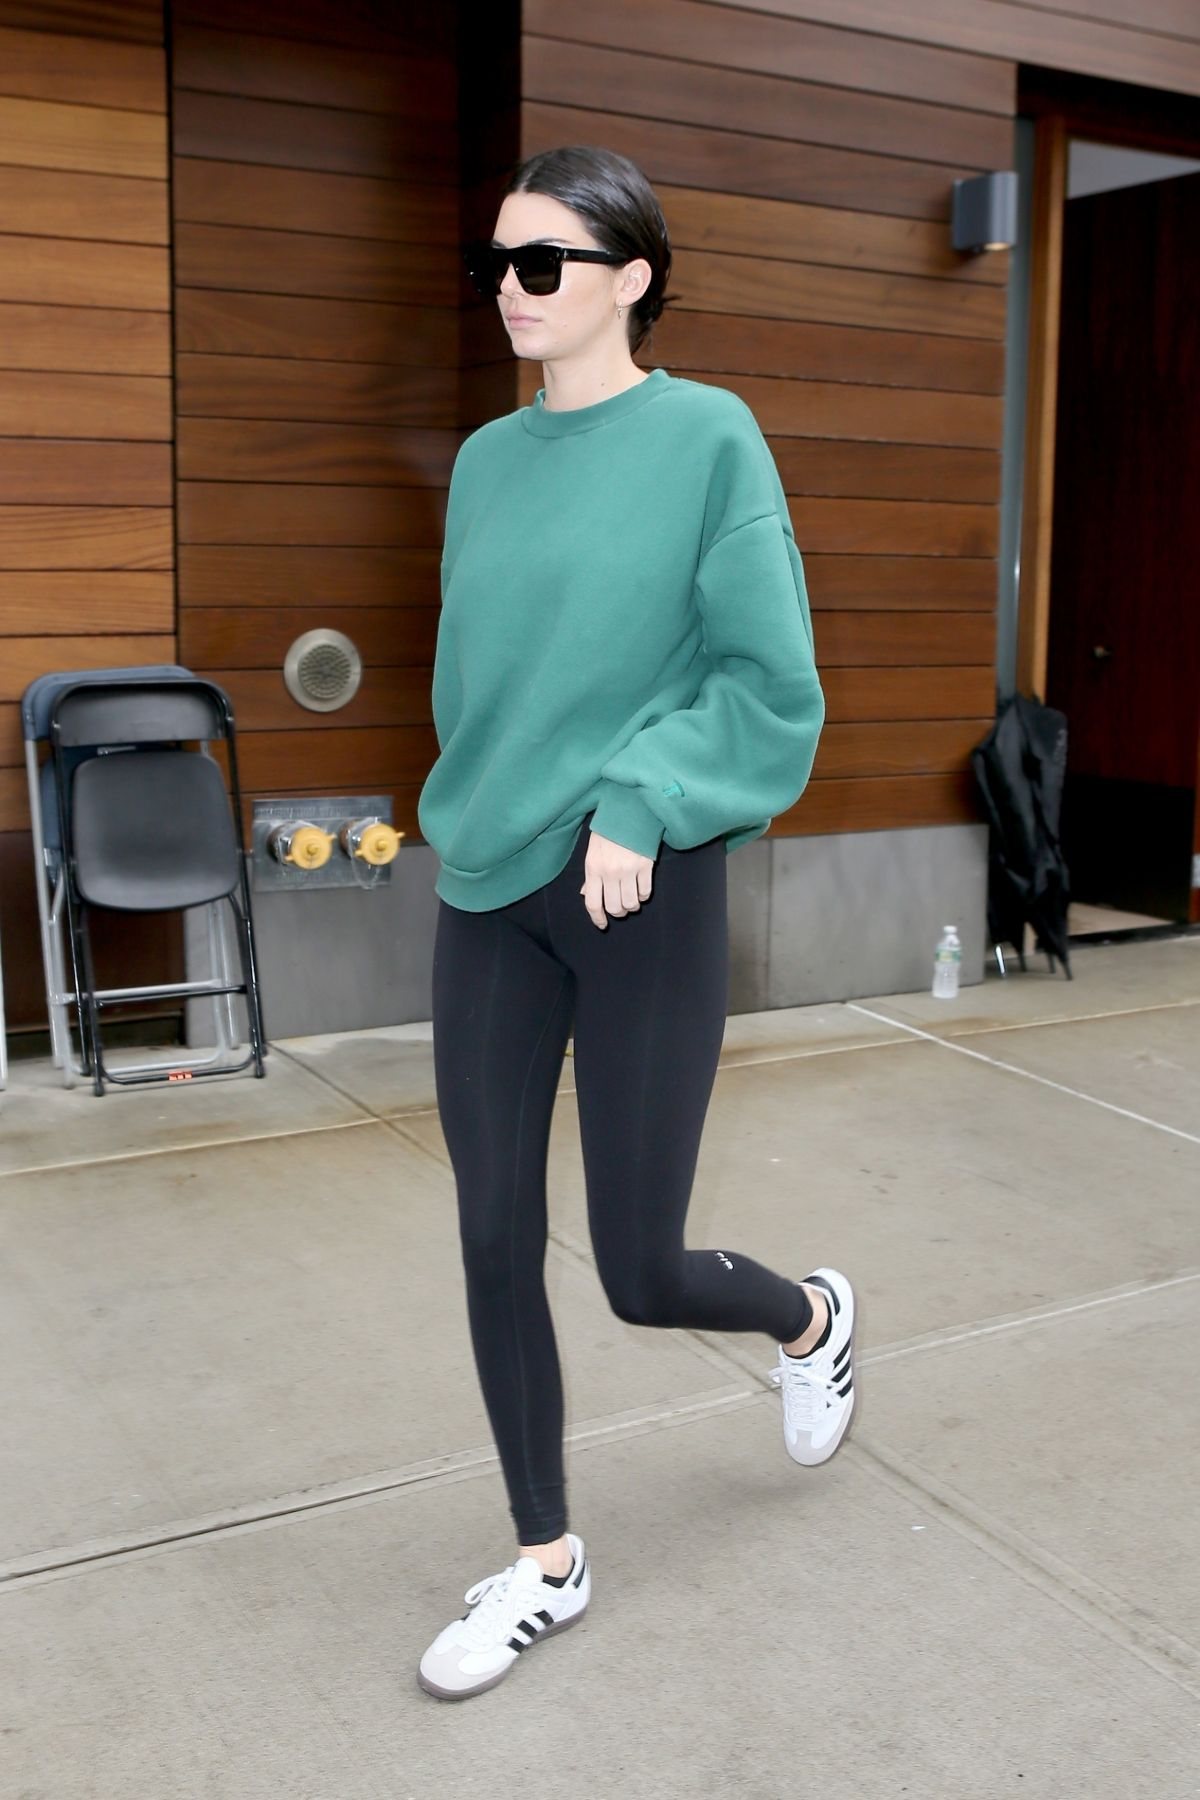 Kendall Jenner Steps out wearing black leggings and a green sweatshirt in NYC